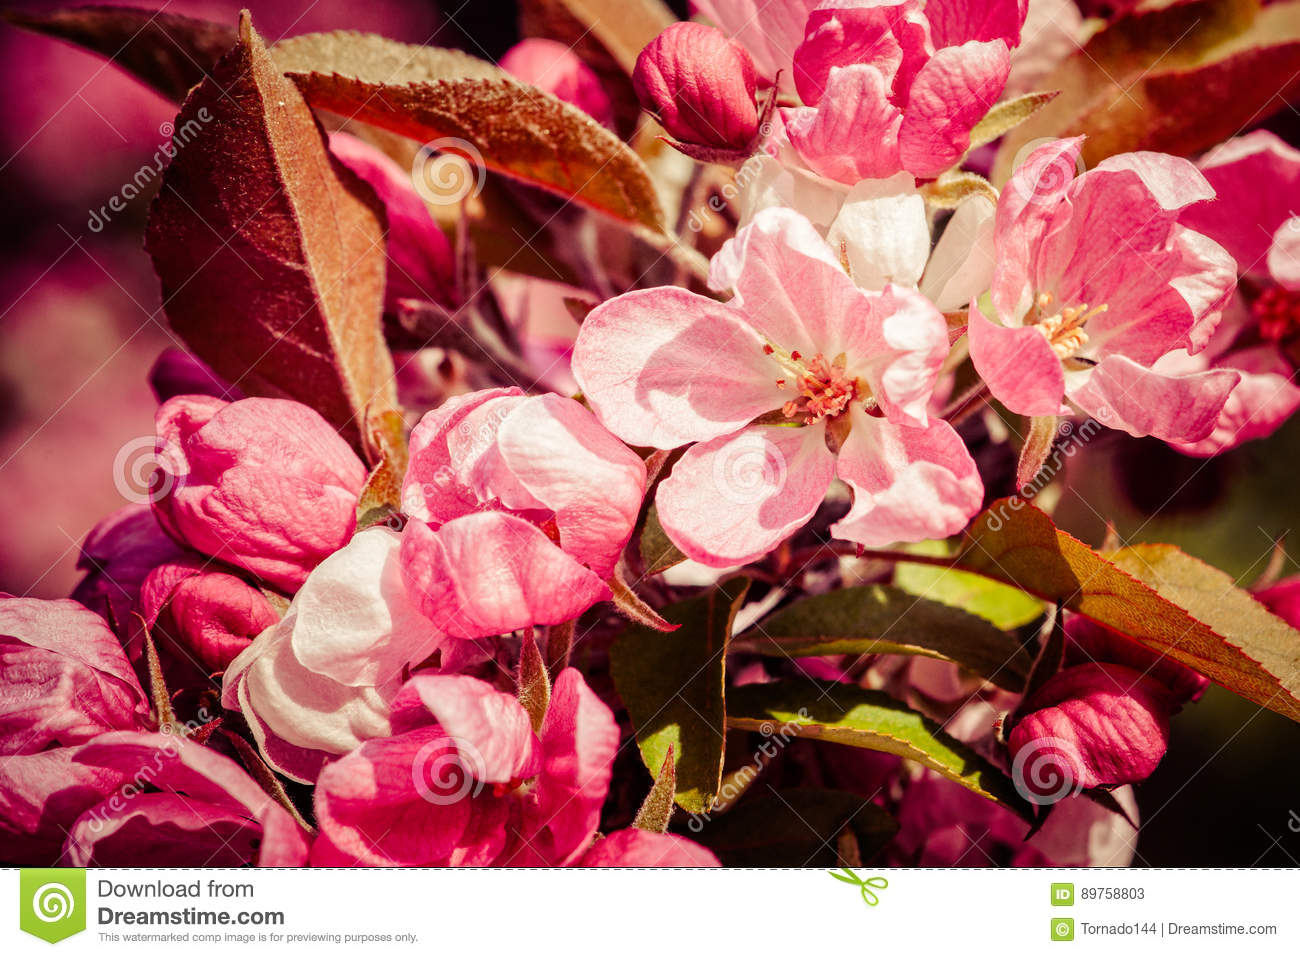 Pink crabapple flowers stock image image of cluster 89758803 closeup view of crabapple tree in bloom clusters or bunches of pink flowers stylized floral photography joy and beauty of spring season mightylinksfo